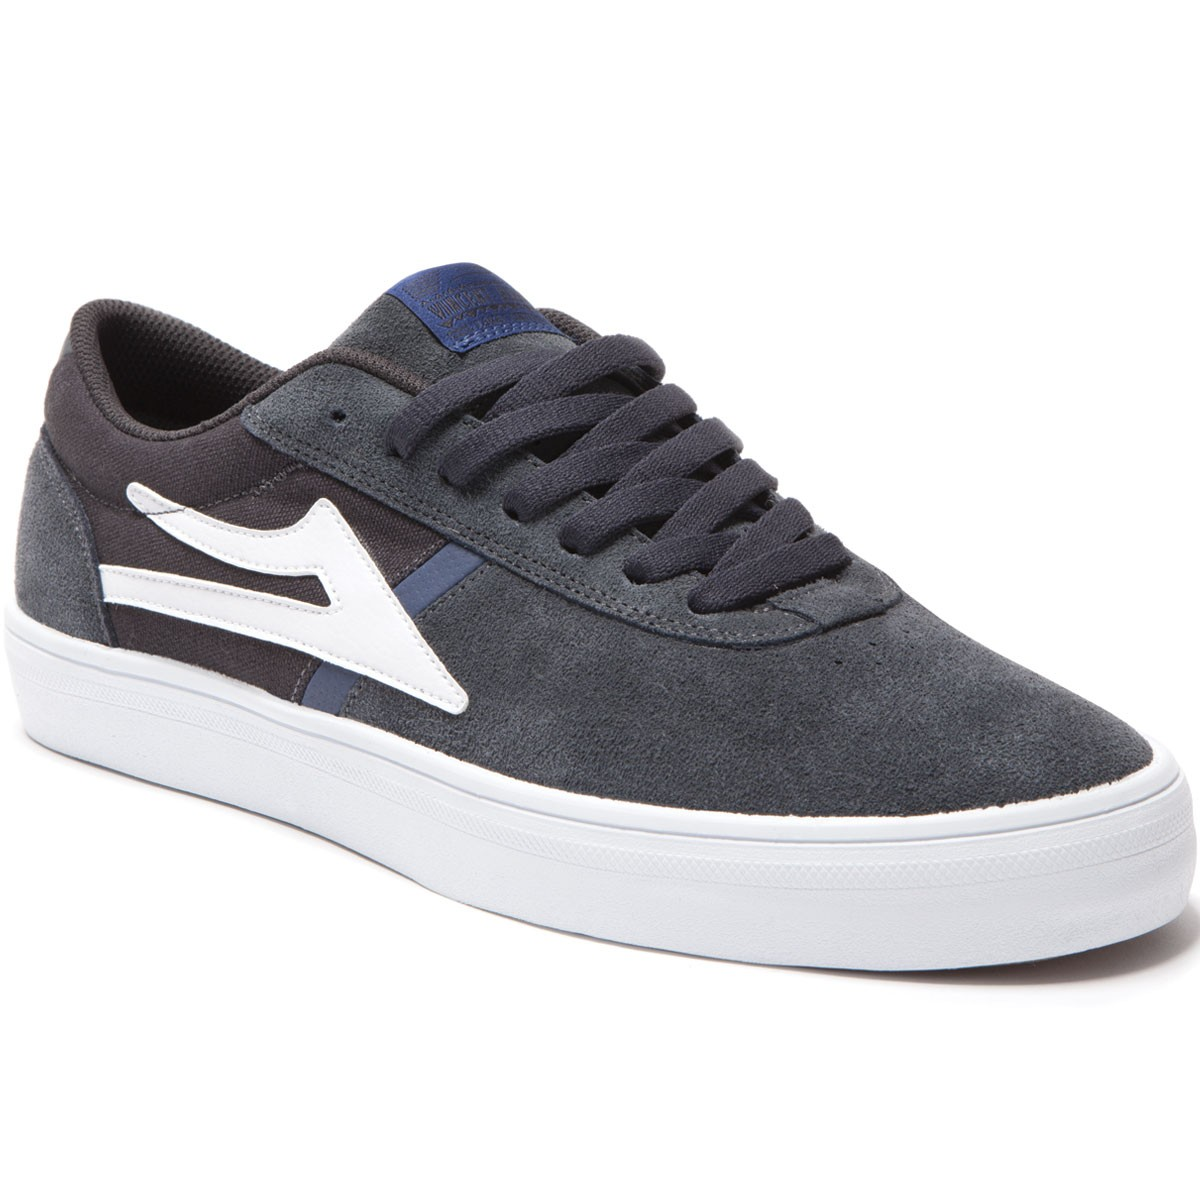 Lakai Vincent Shoes - Phantom Suede - 10